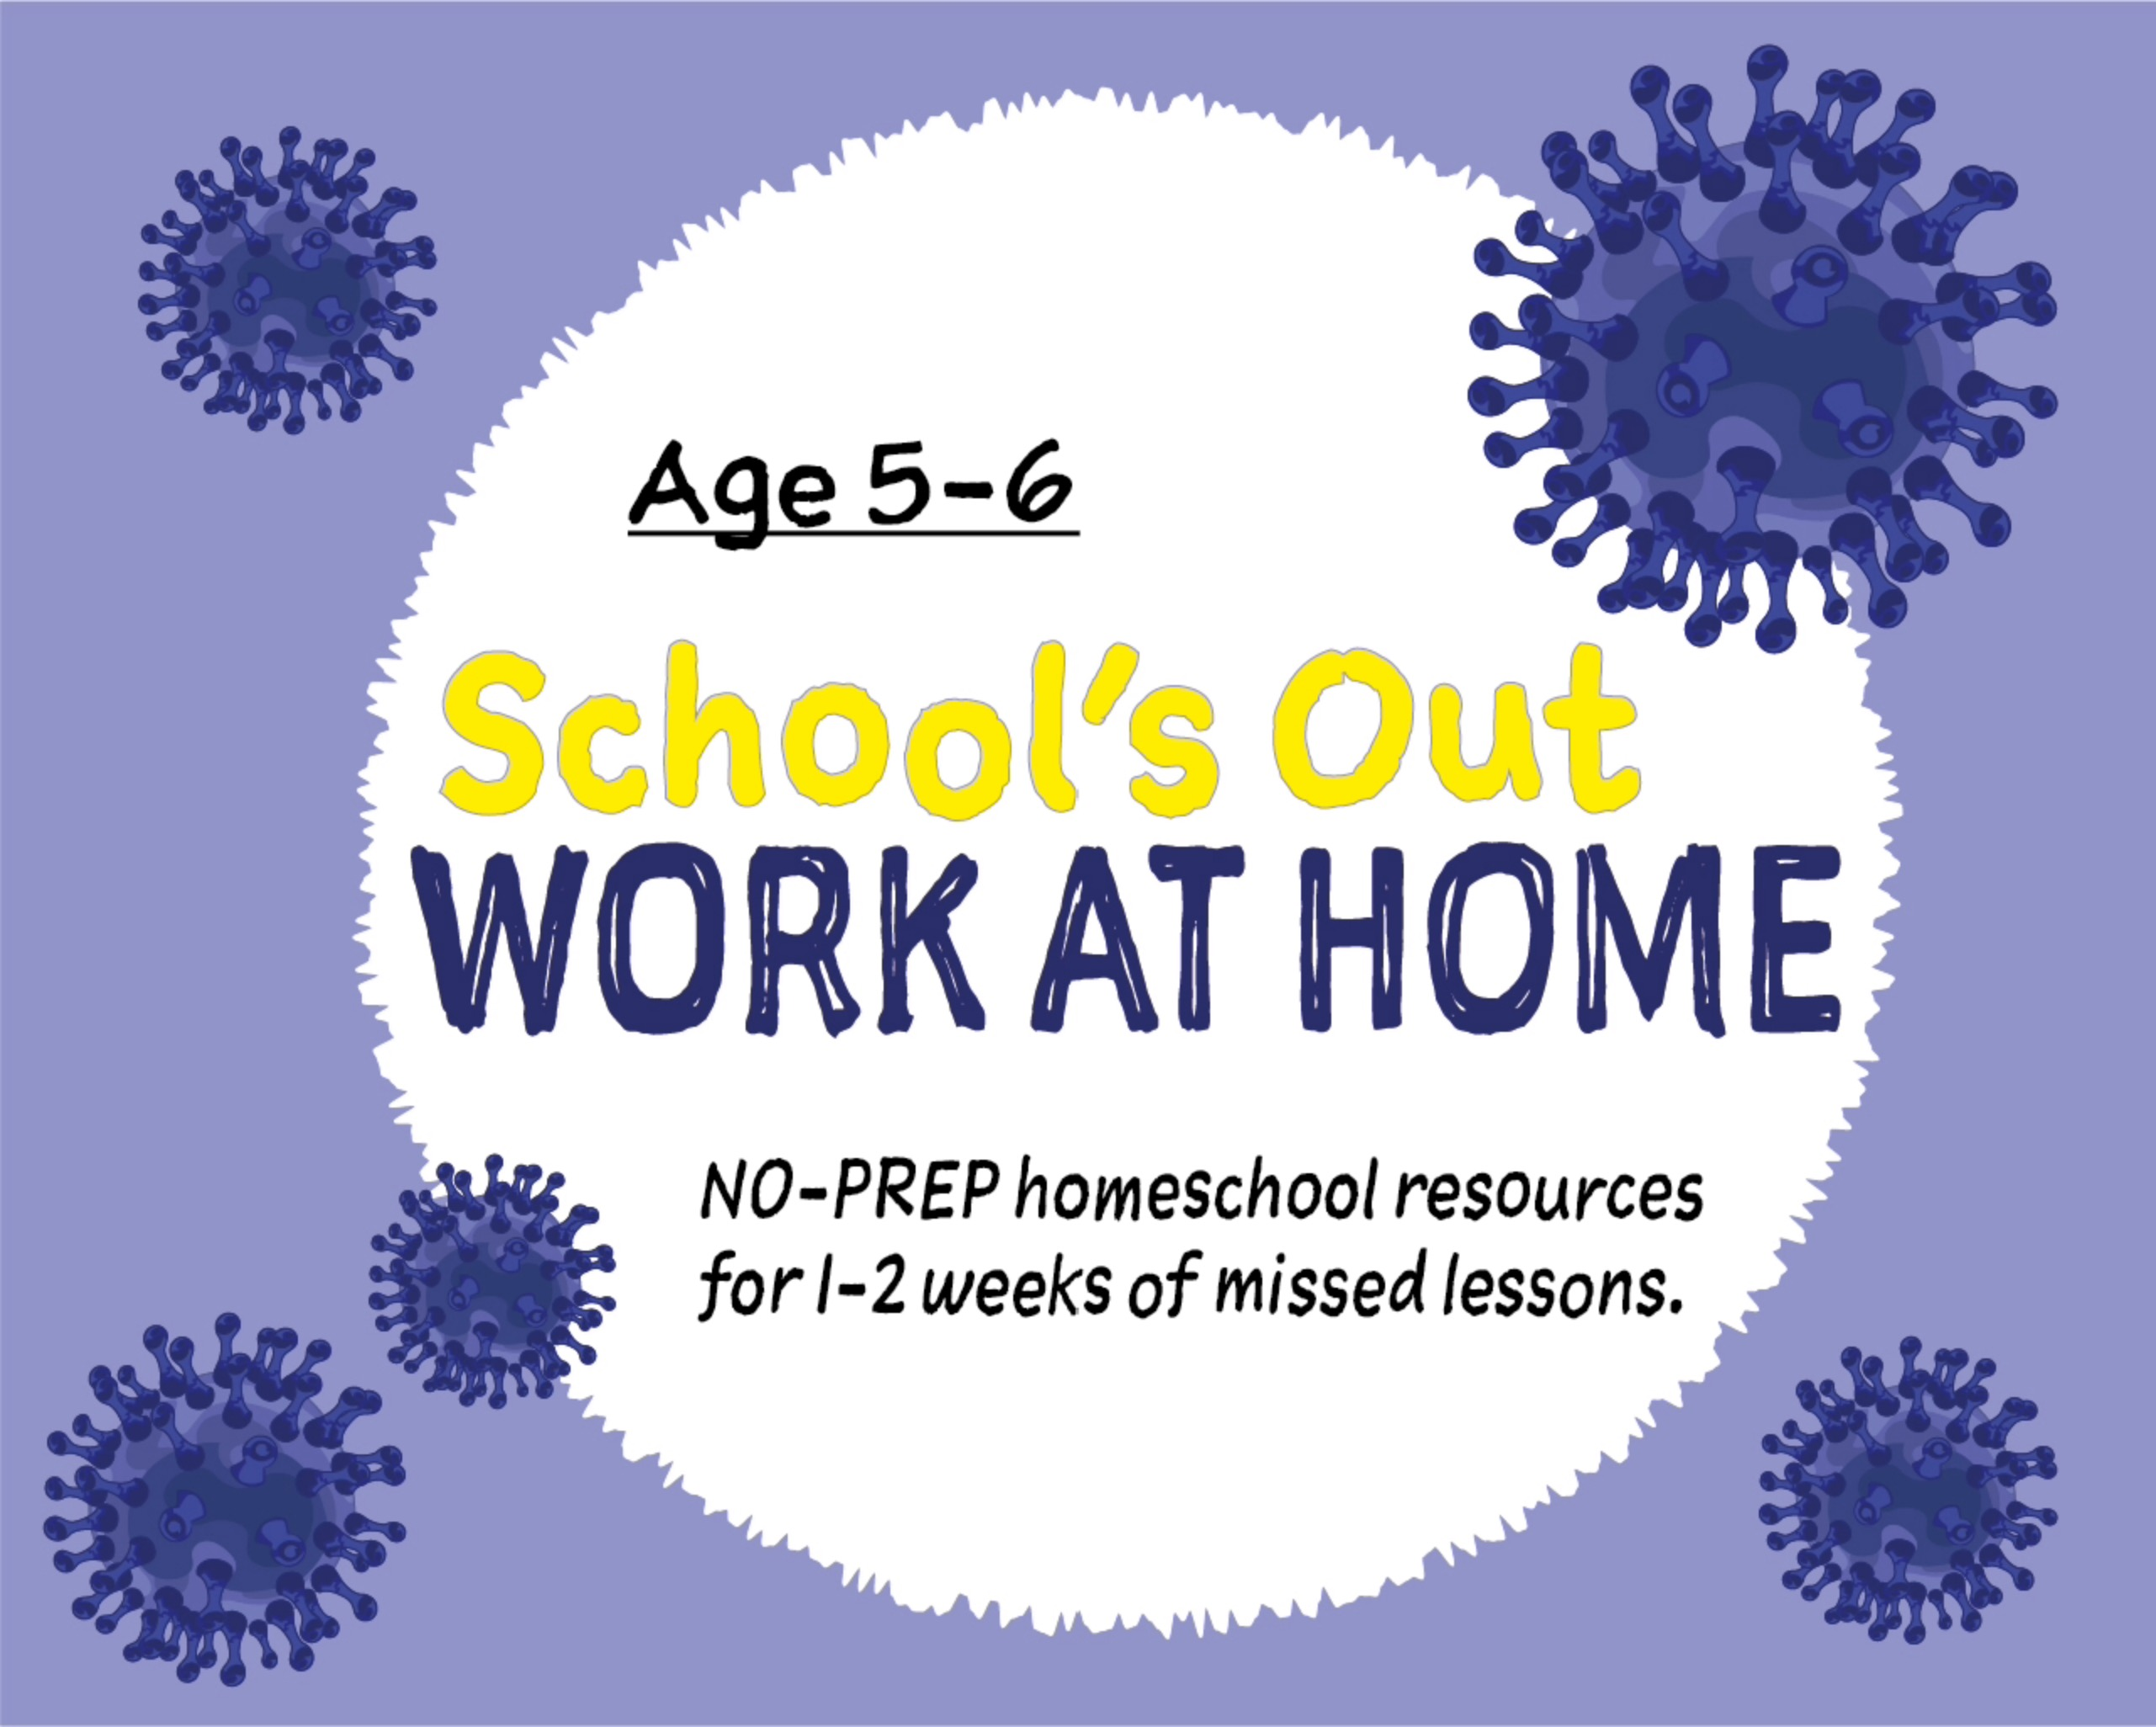 Schools Out For Coronavirus! Prepare For Schooling At Home (age 5-6 years) (year 1) (Kindergarten)